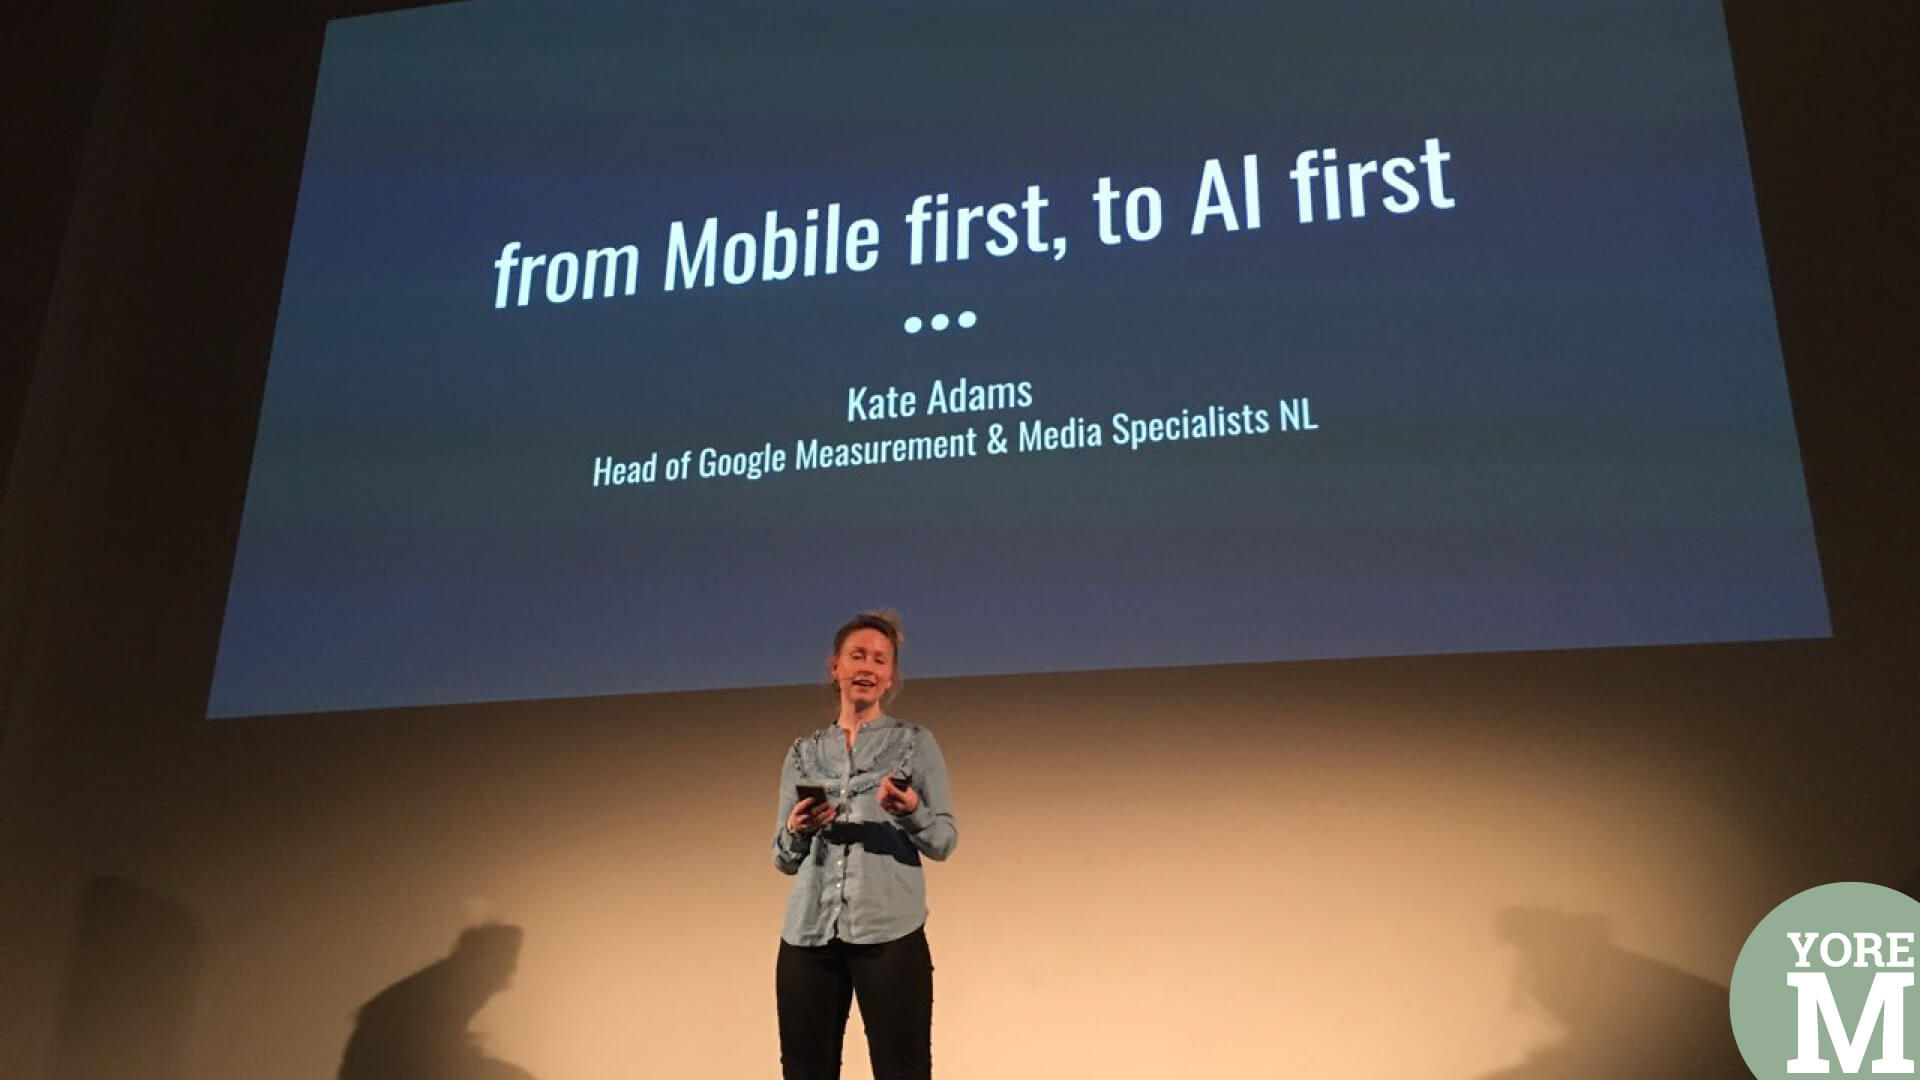 From-Mobile-first-to-AI-first-Kate-Adams-Head-of-Media-Measurement-Specialists-NL-GOOGLE-yoreM